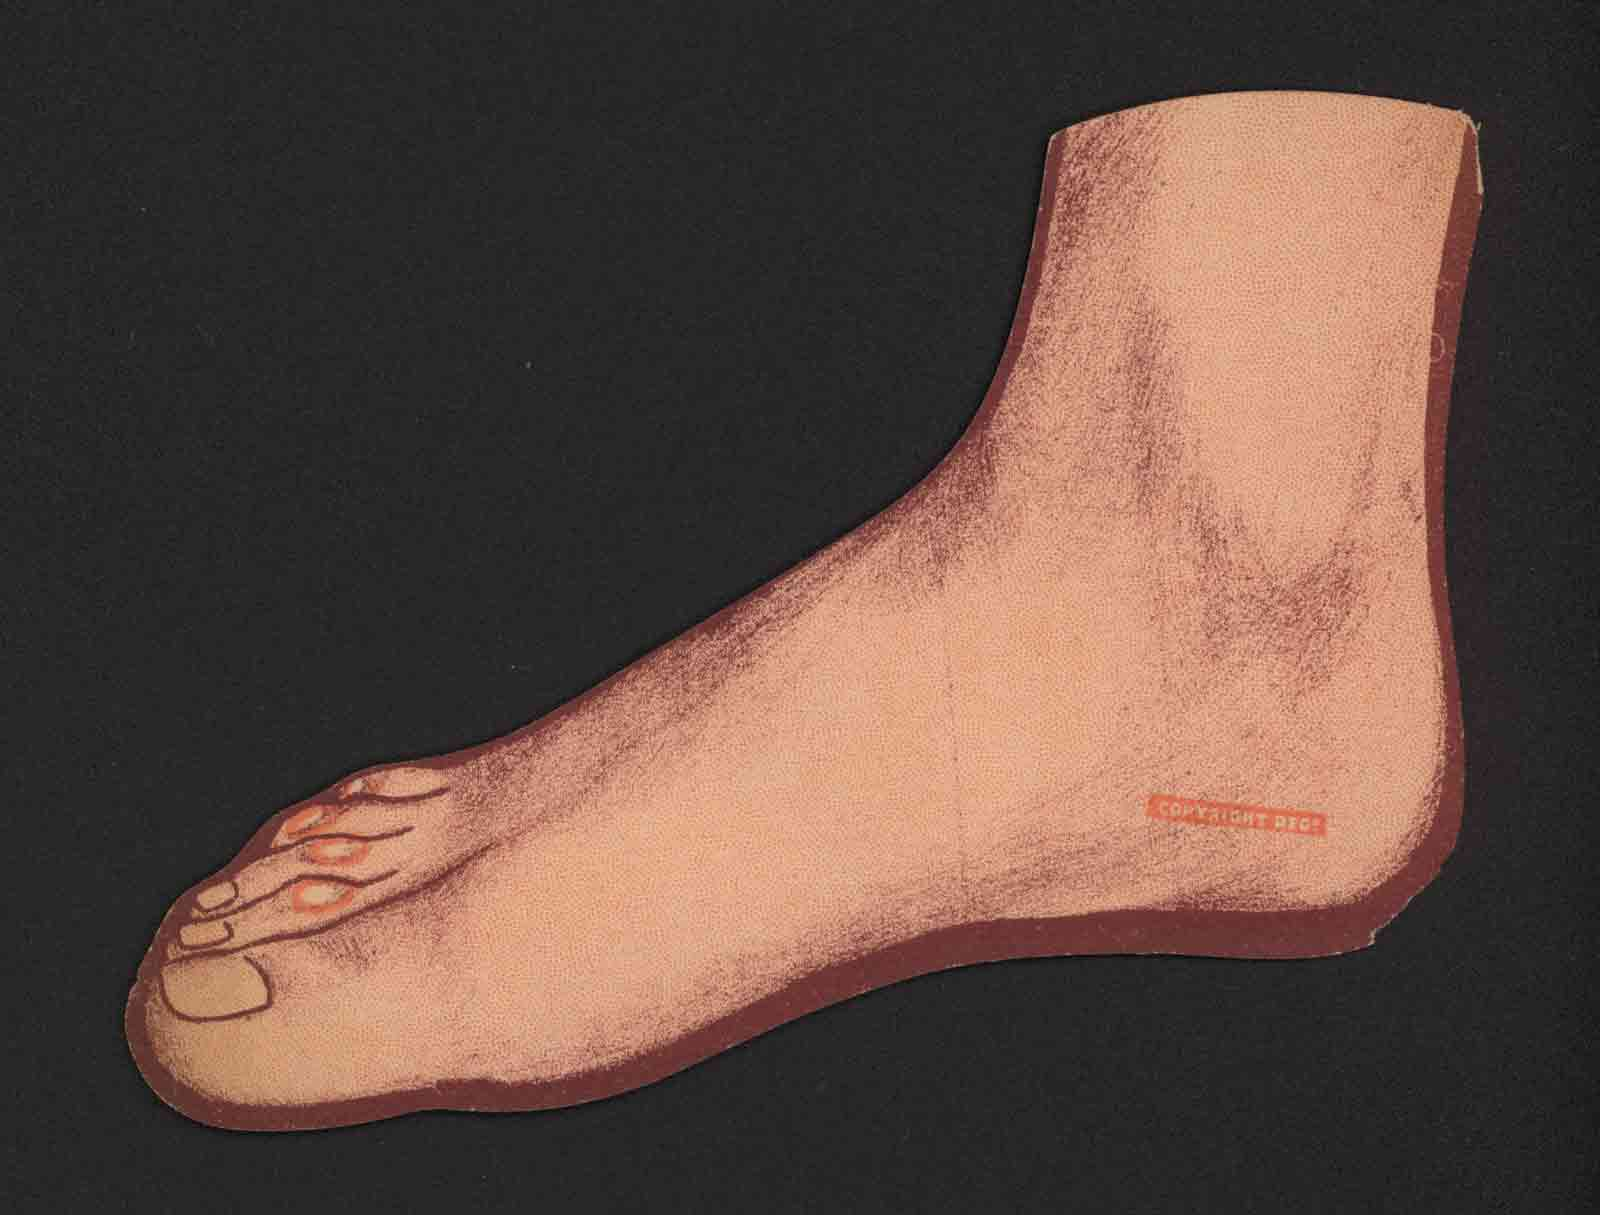 Lithograph of a foot, twentieth century